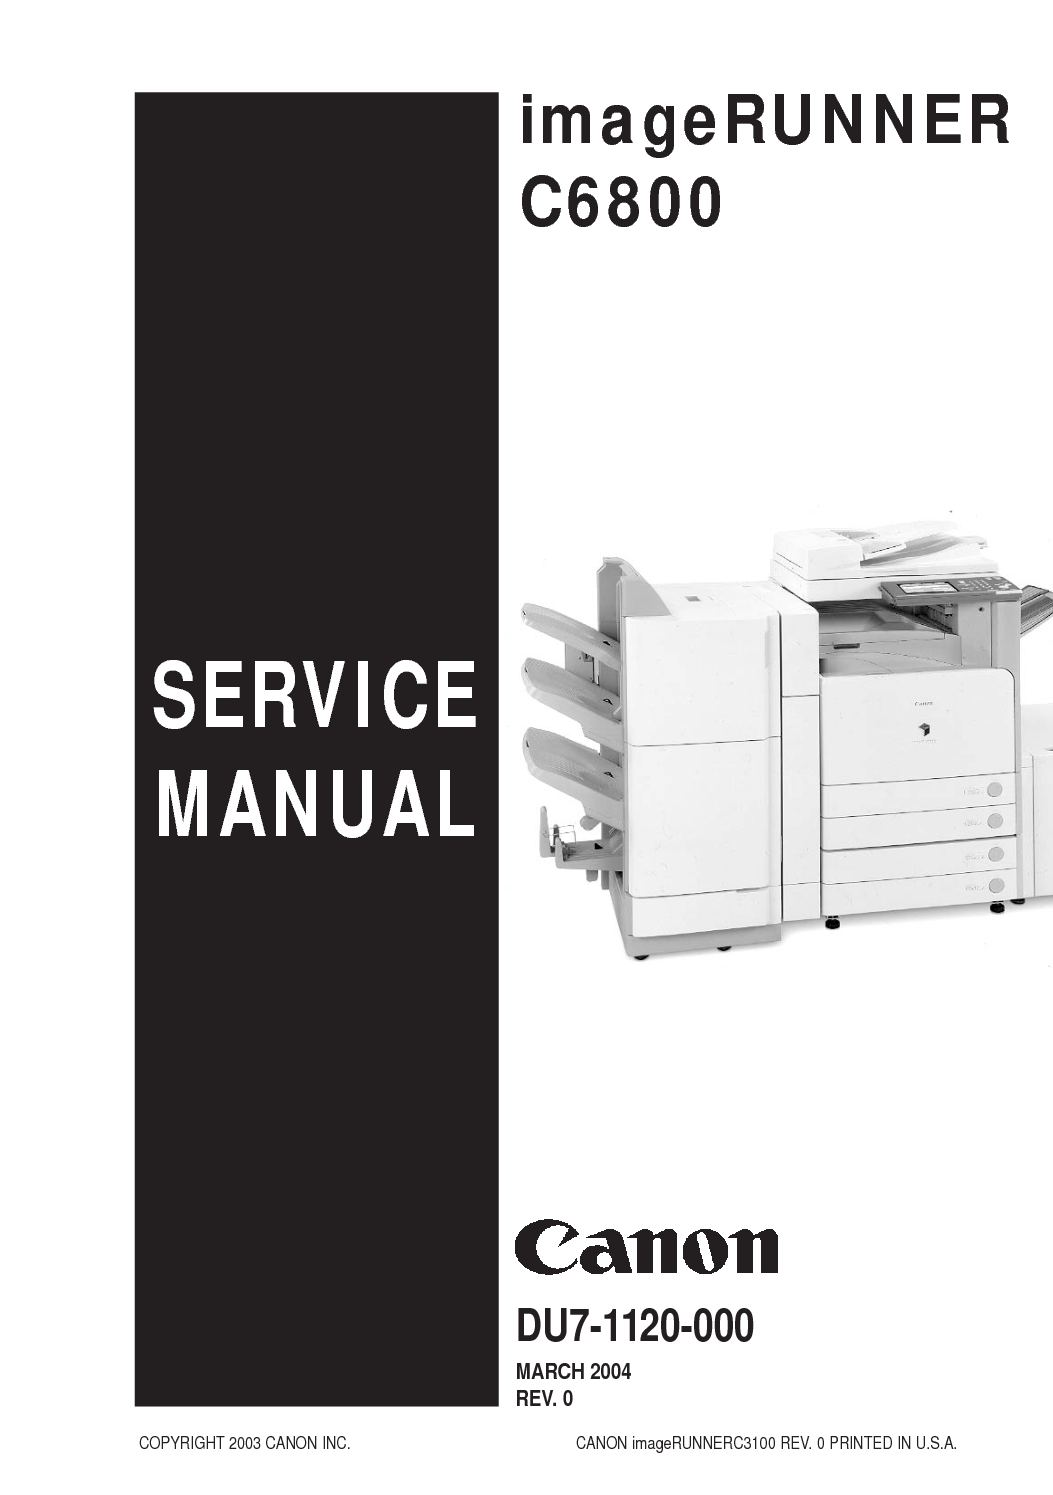 DOWNLOAD DRIVERS: CANON C6800